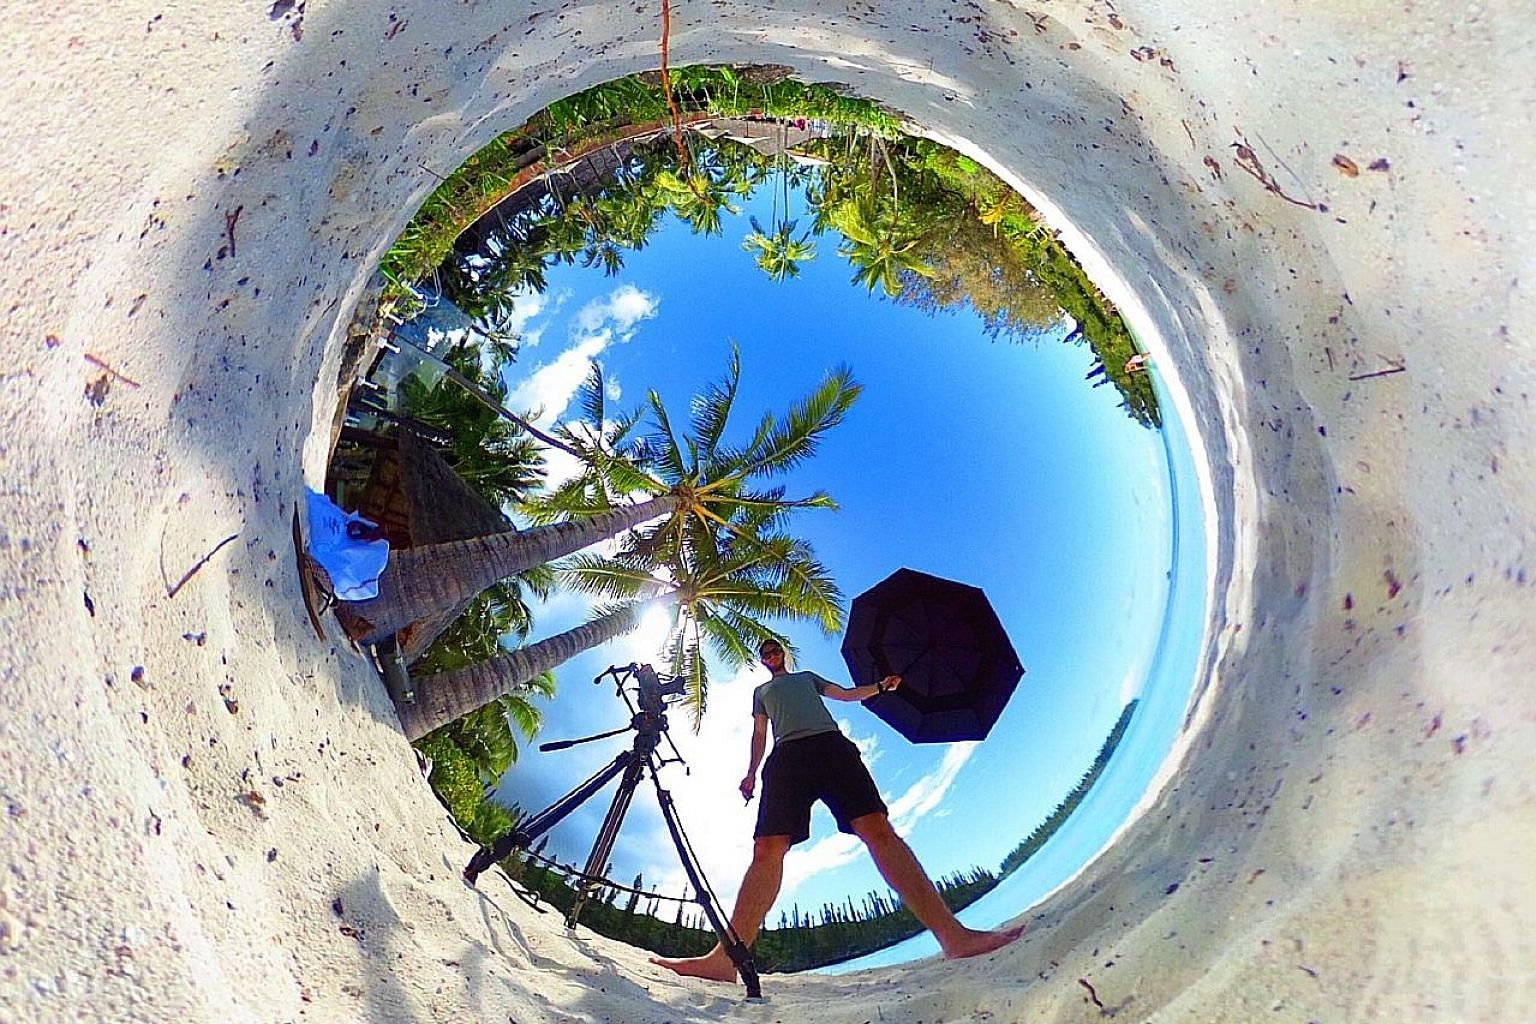 A photo taken using a 360-degree camera.